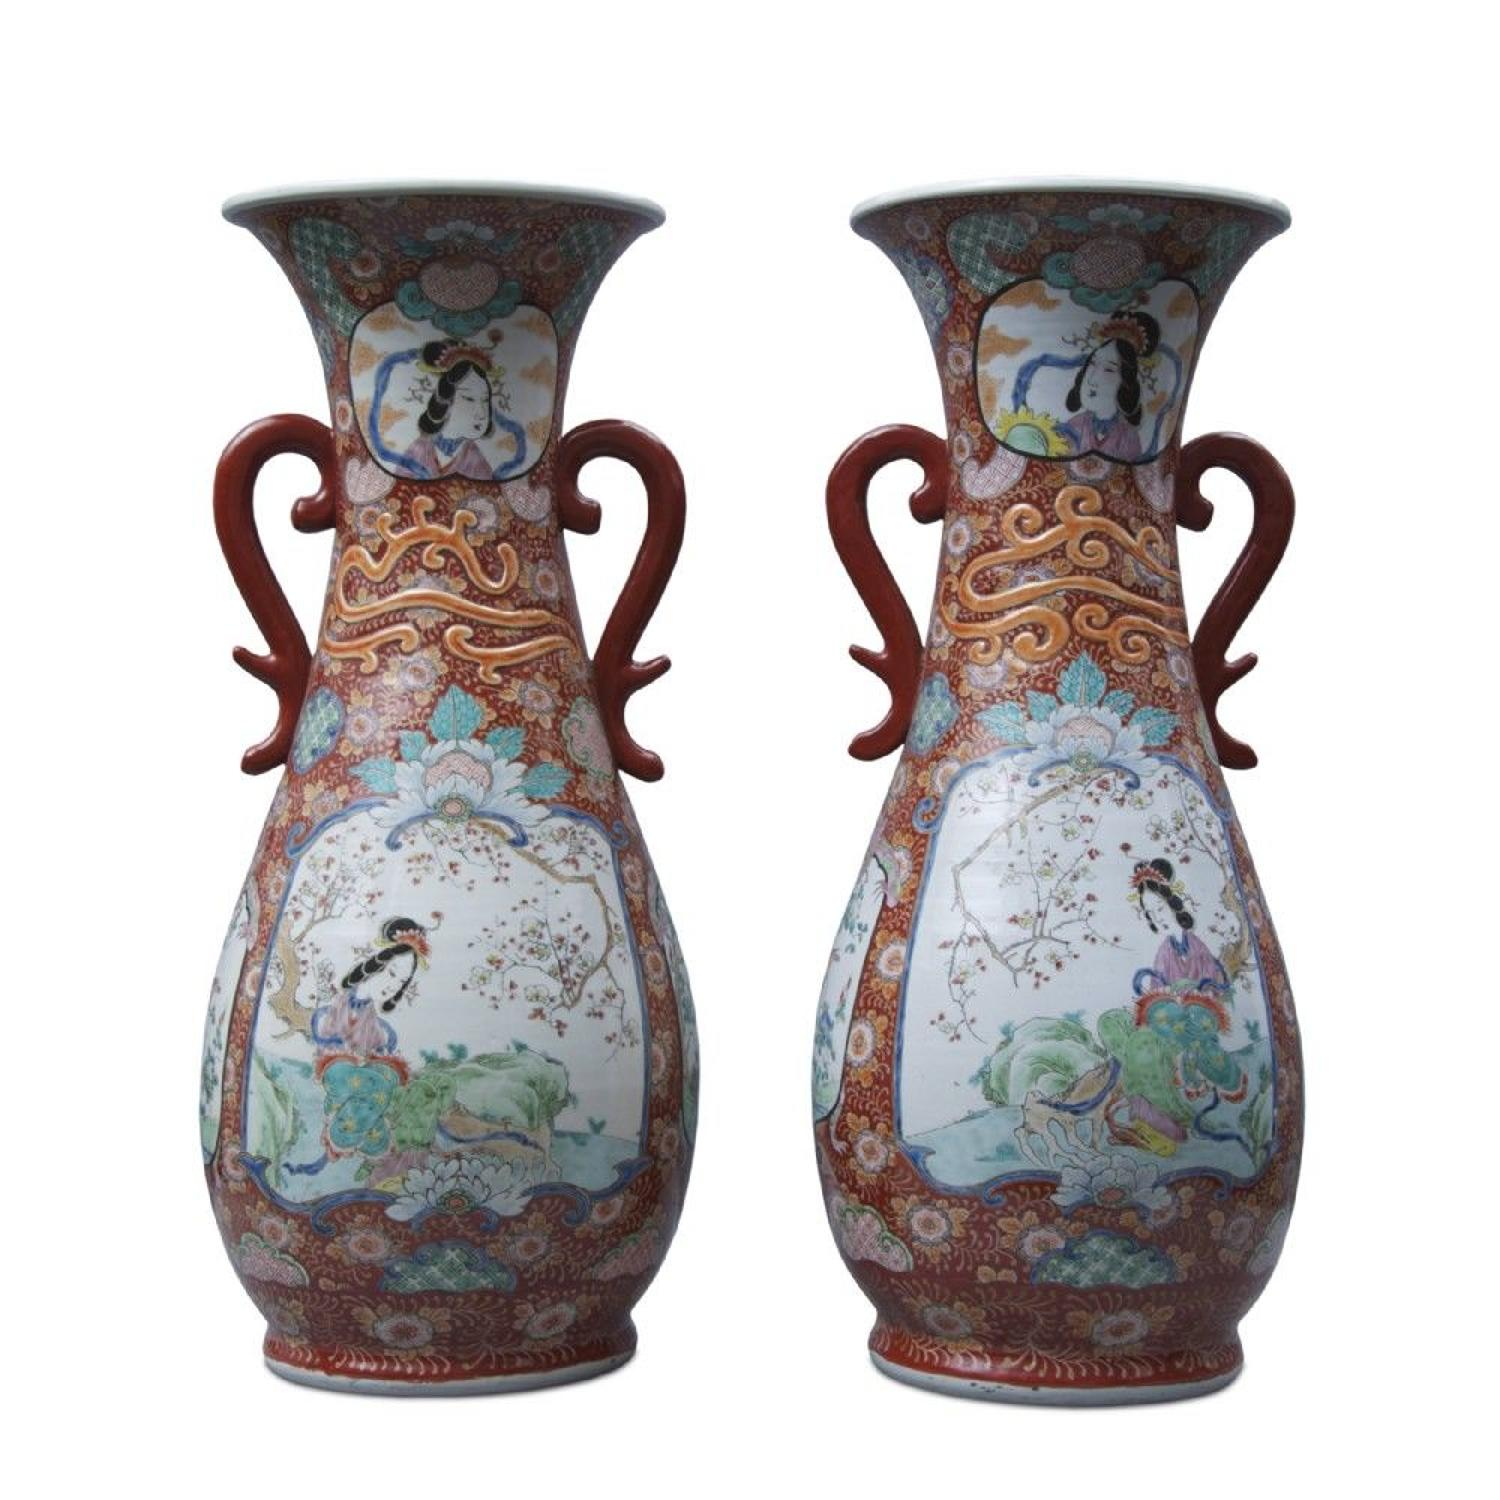 A Large Pair Of Late 19th Century Japanese Floor Vases